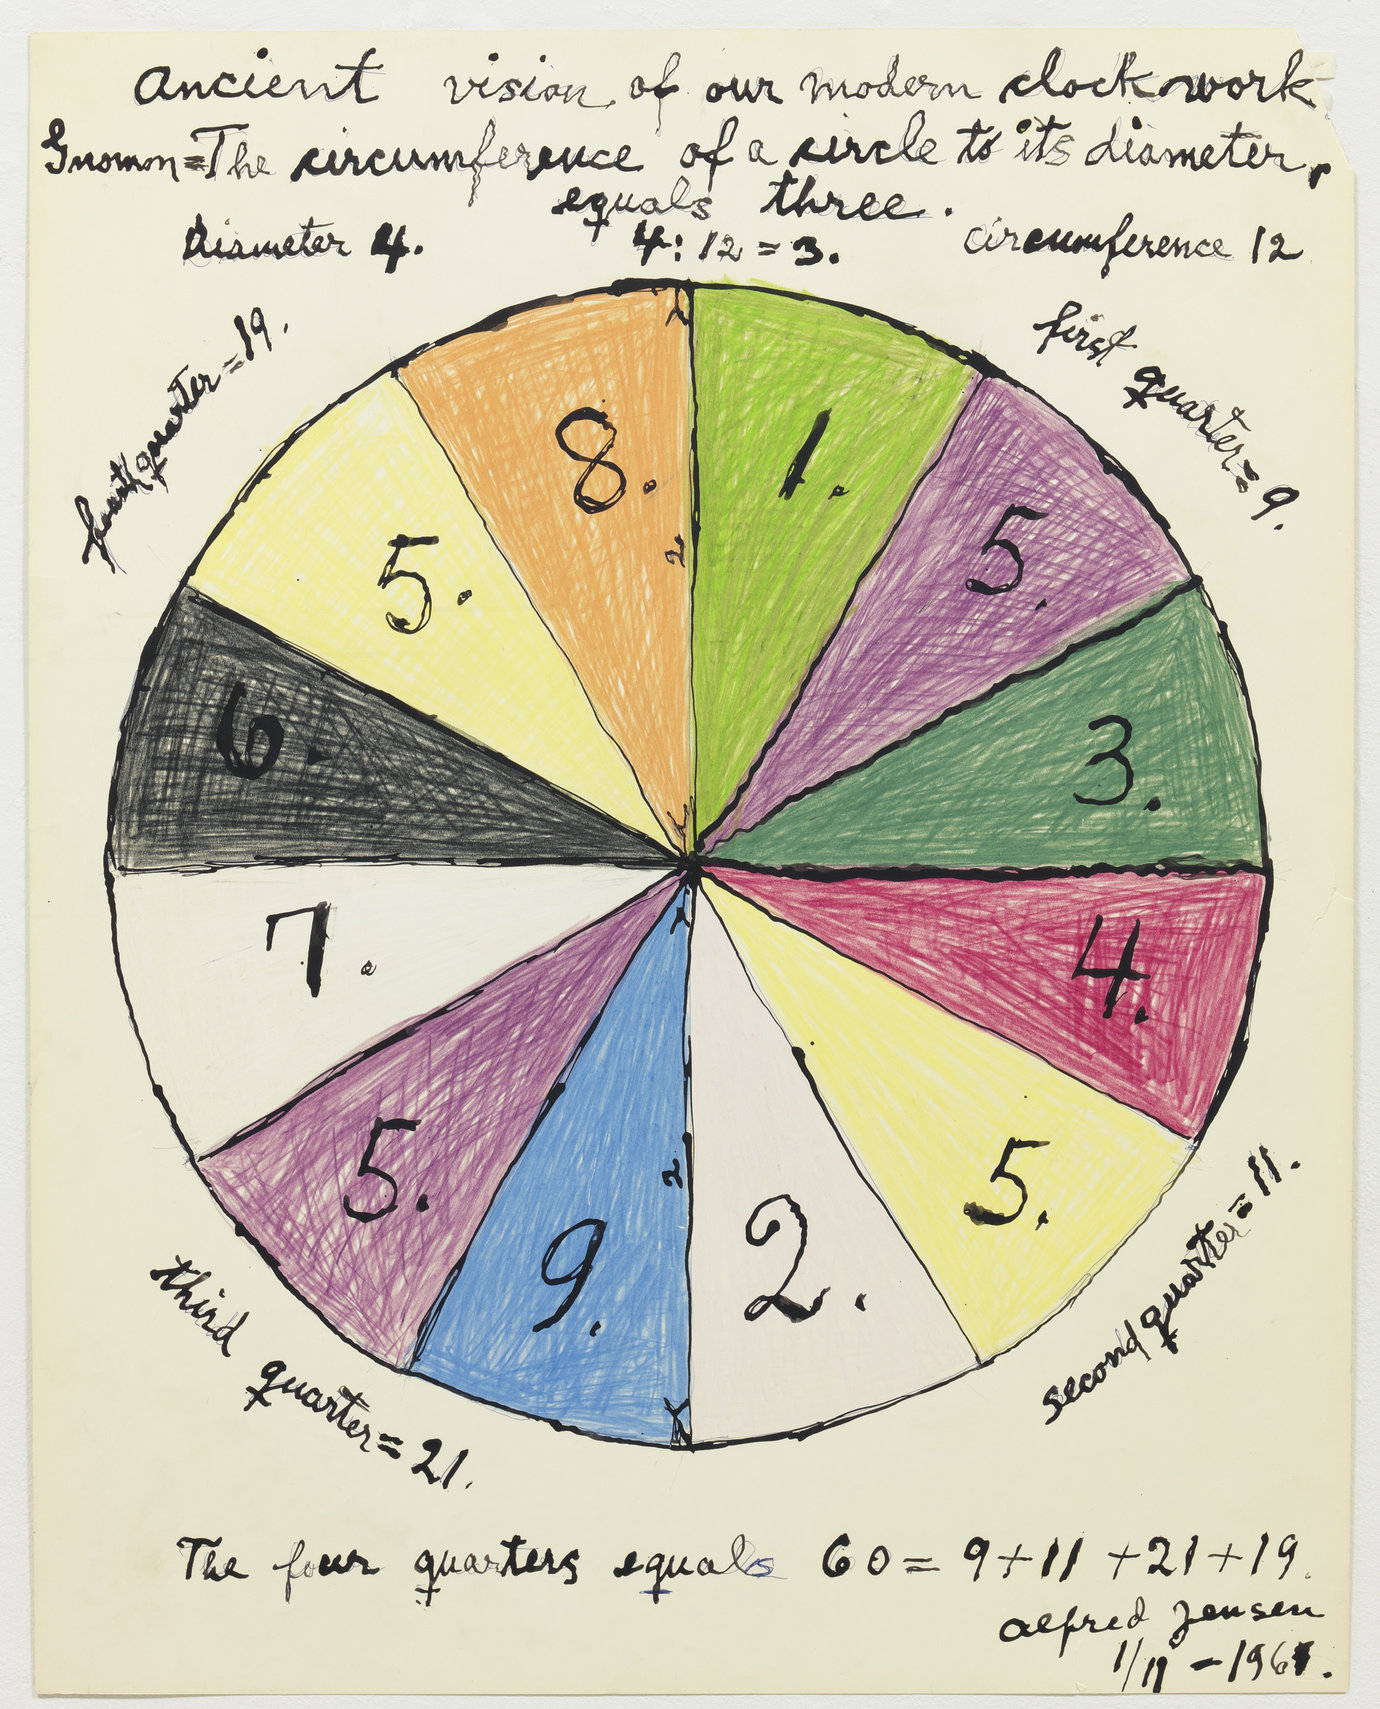 ", January 18, 1961. ink and colored pencil on paper, 32"" x 26"" (81.3 cm x 66 cm)."